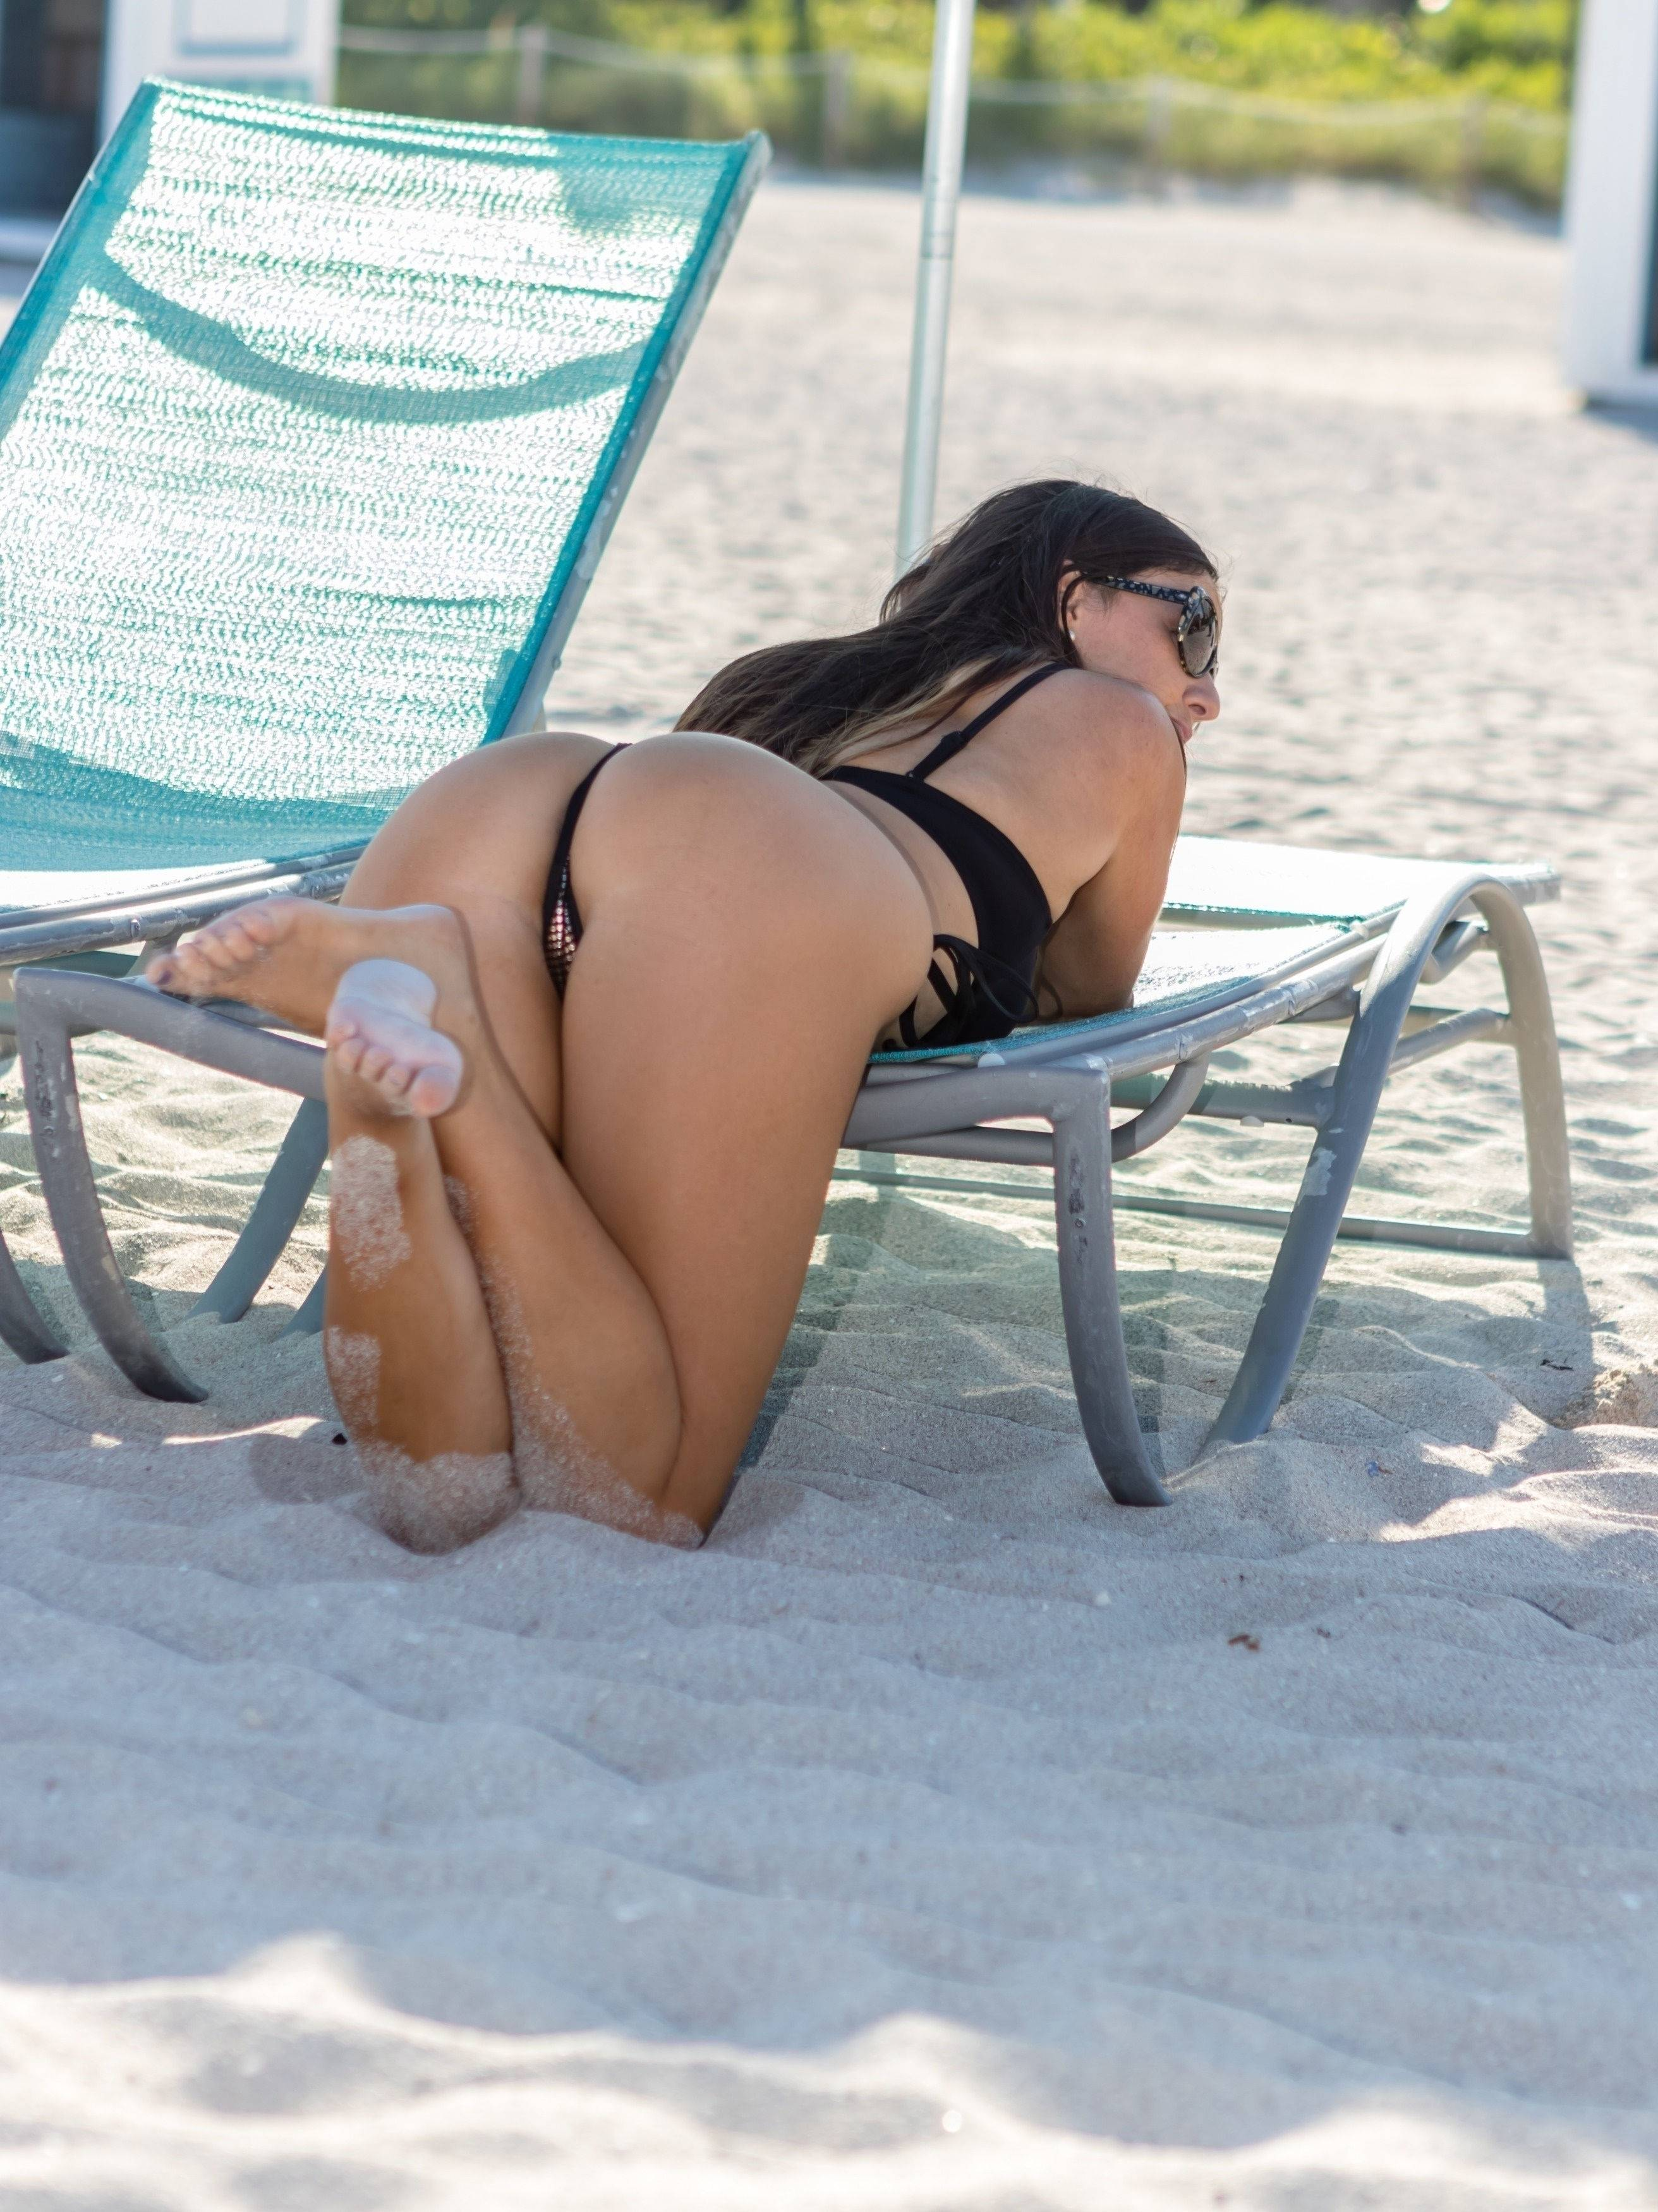 Backpage south beach miami